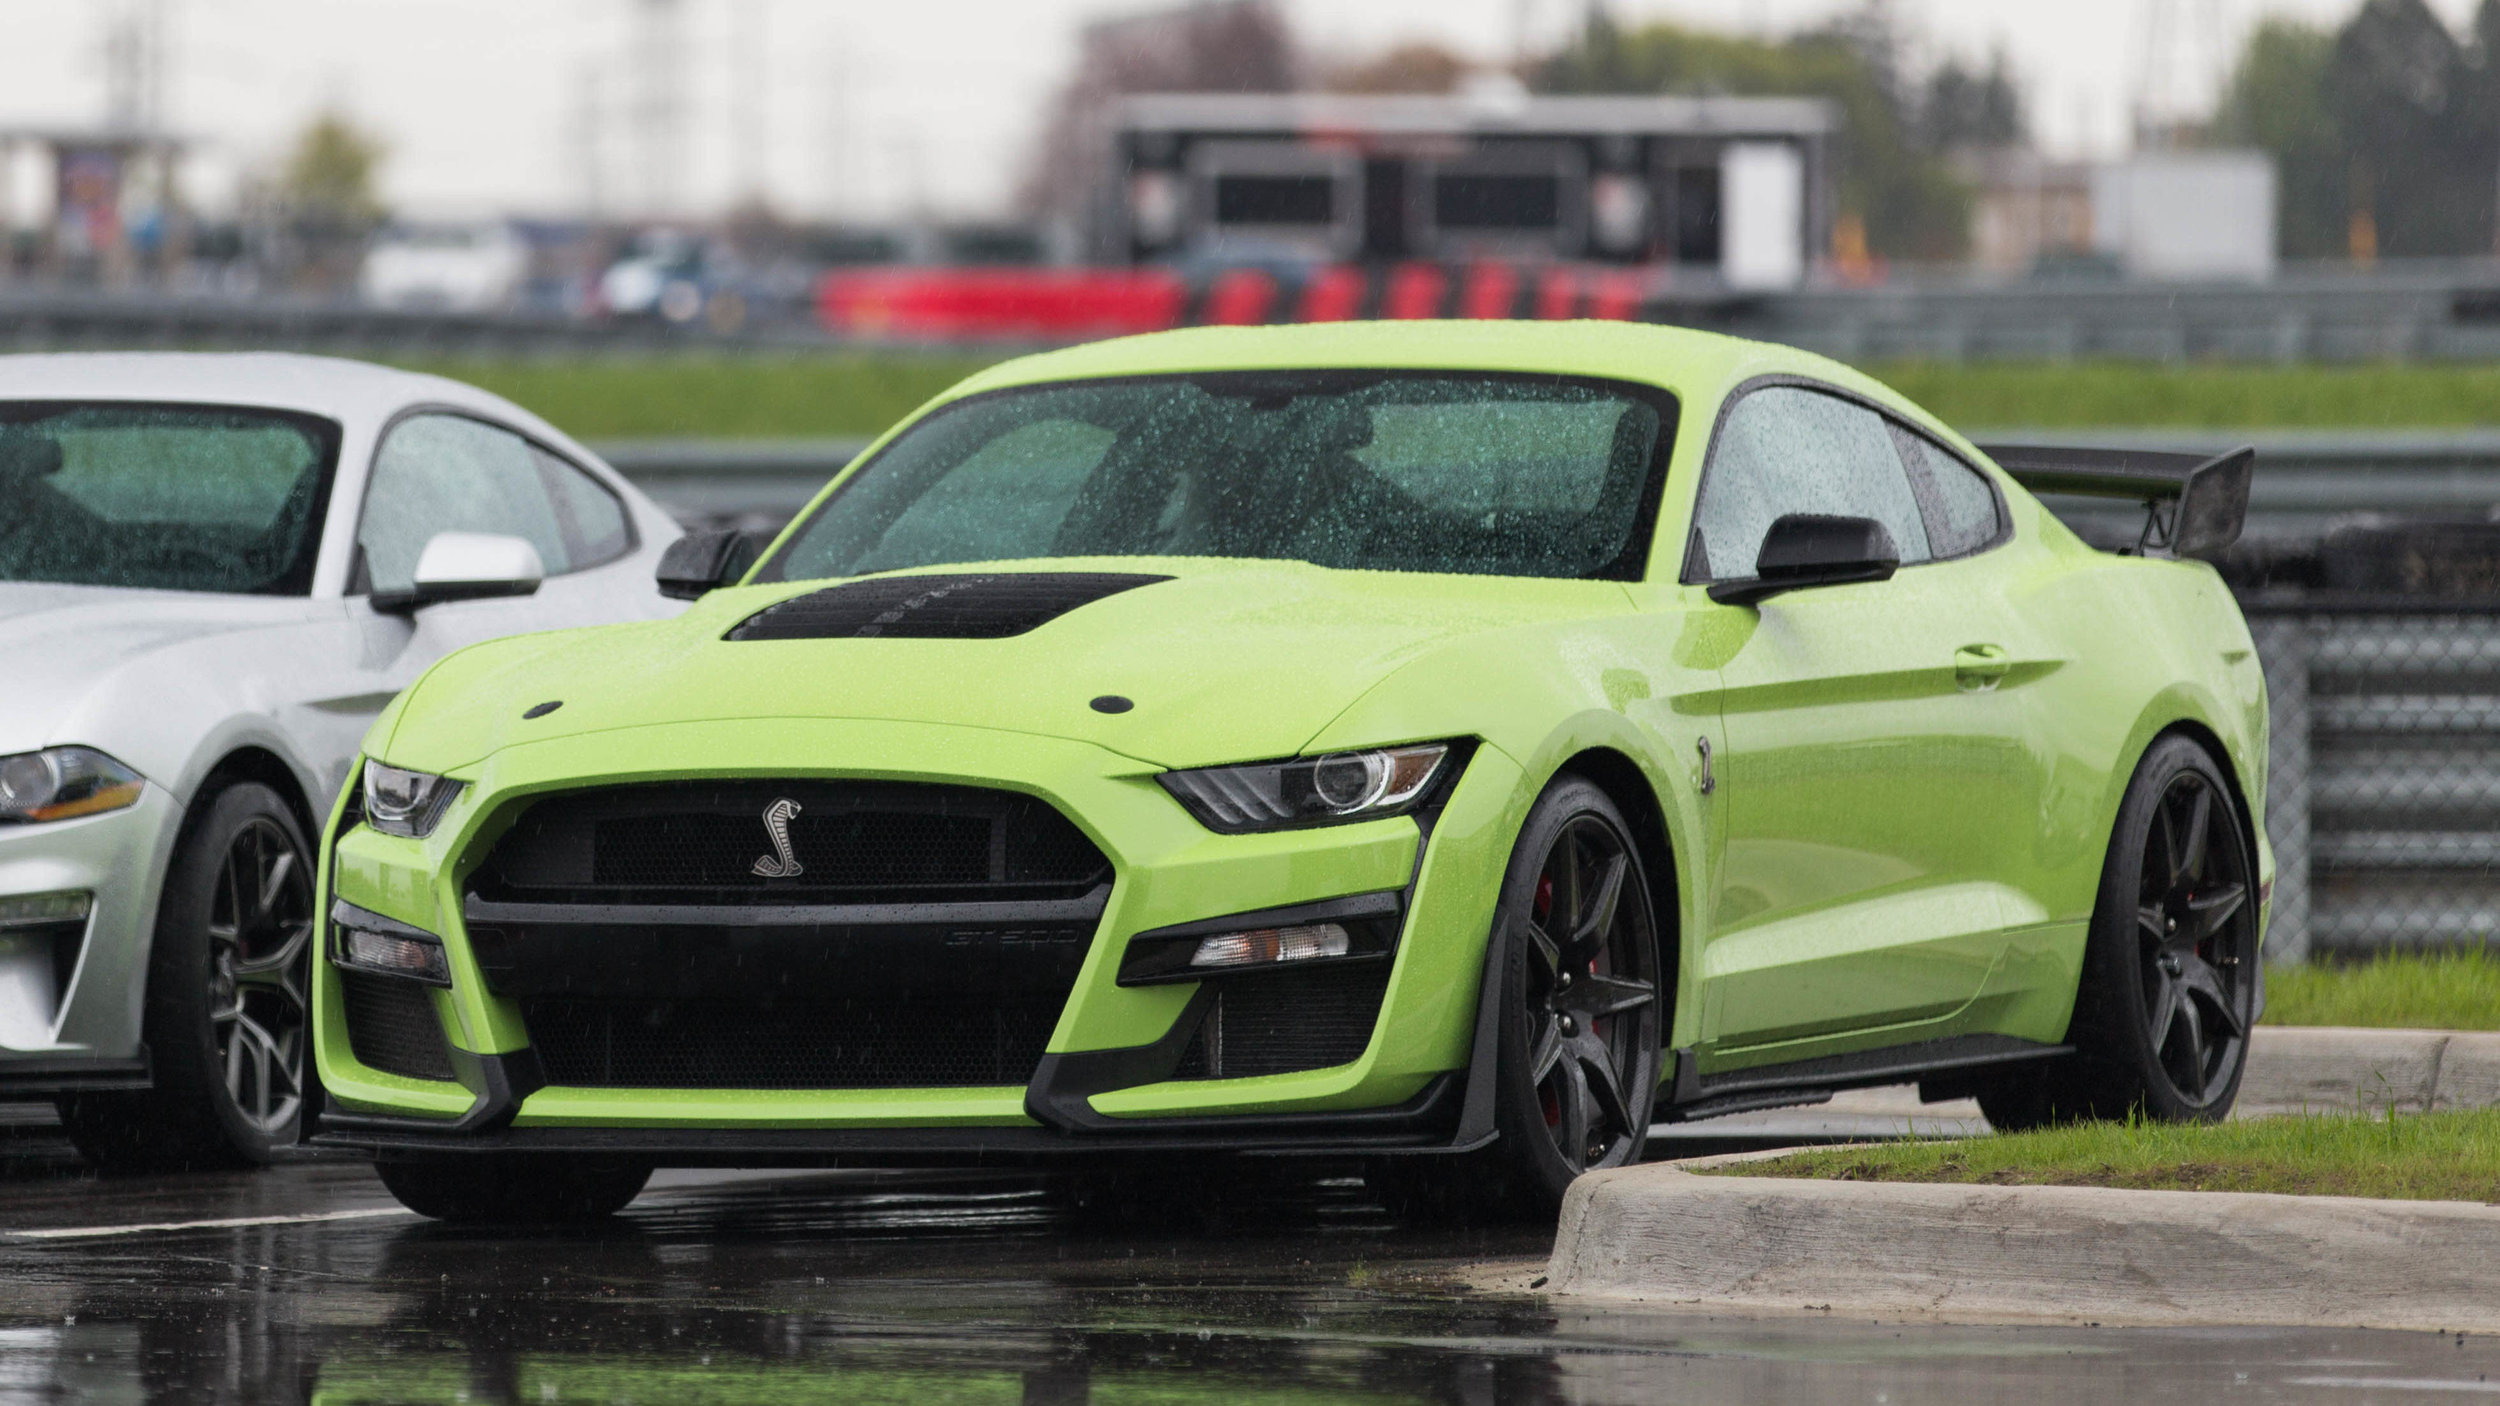 2020-ford-mustang-shelby-gt500-760-hp.jpg